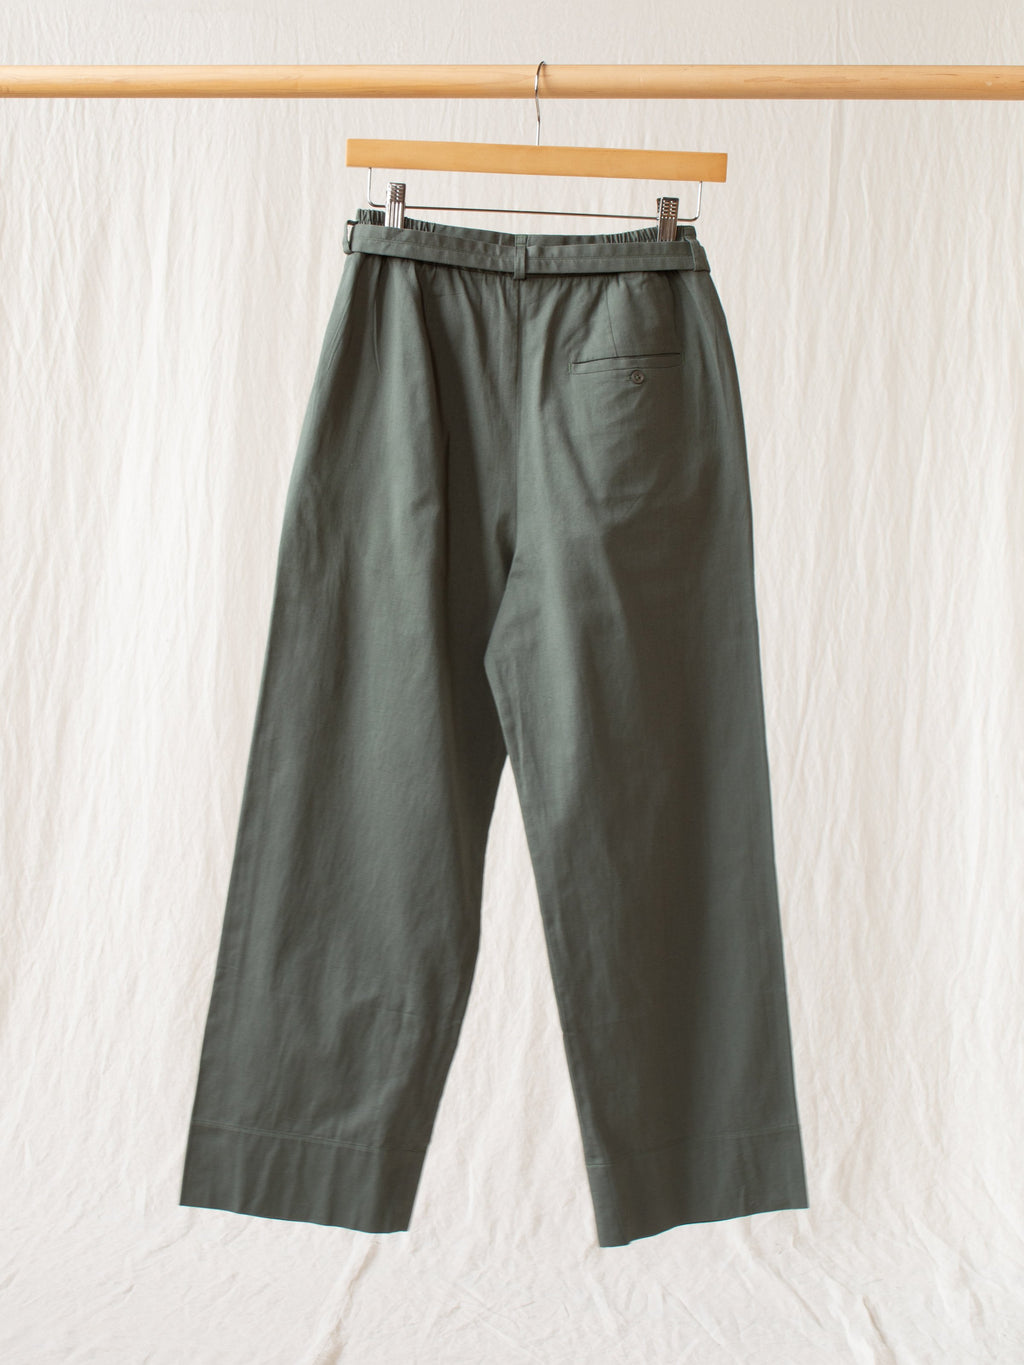 Namu Shop - Jan Machenhauer Teresa Pant with Belt - Sage